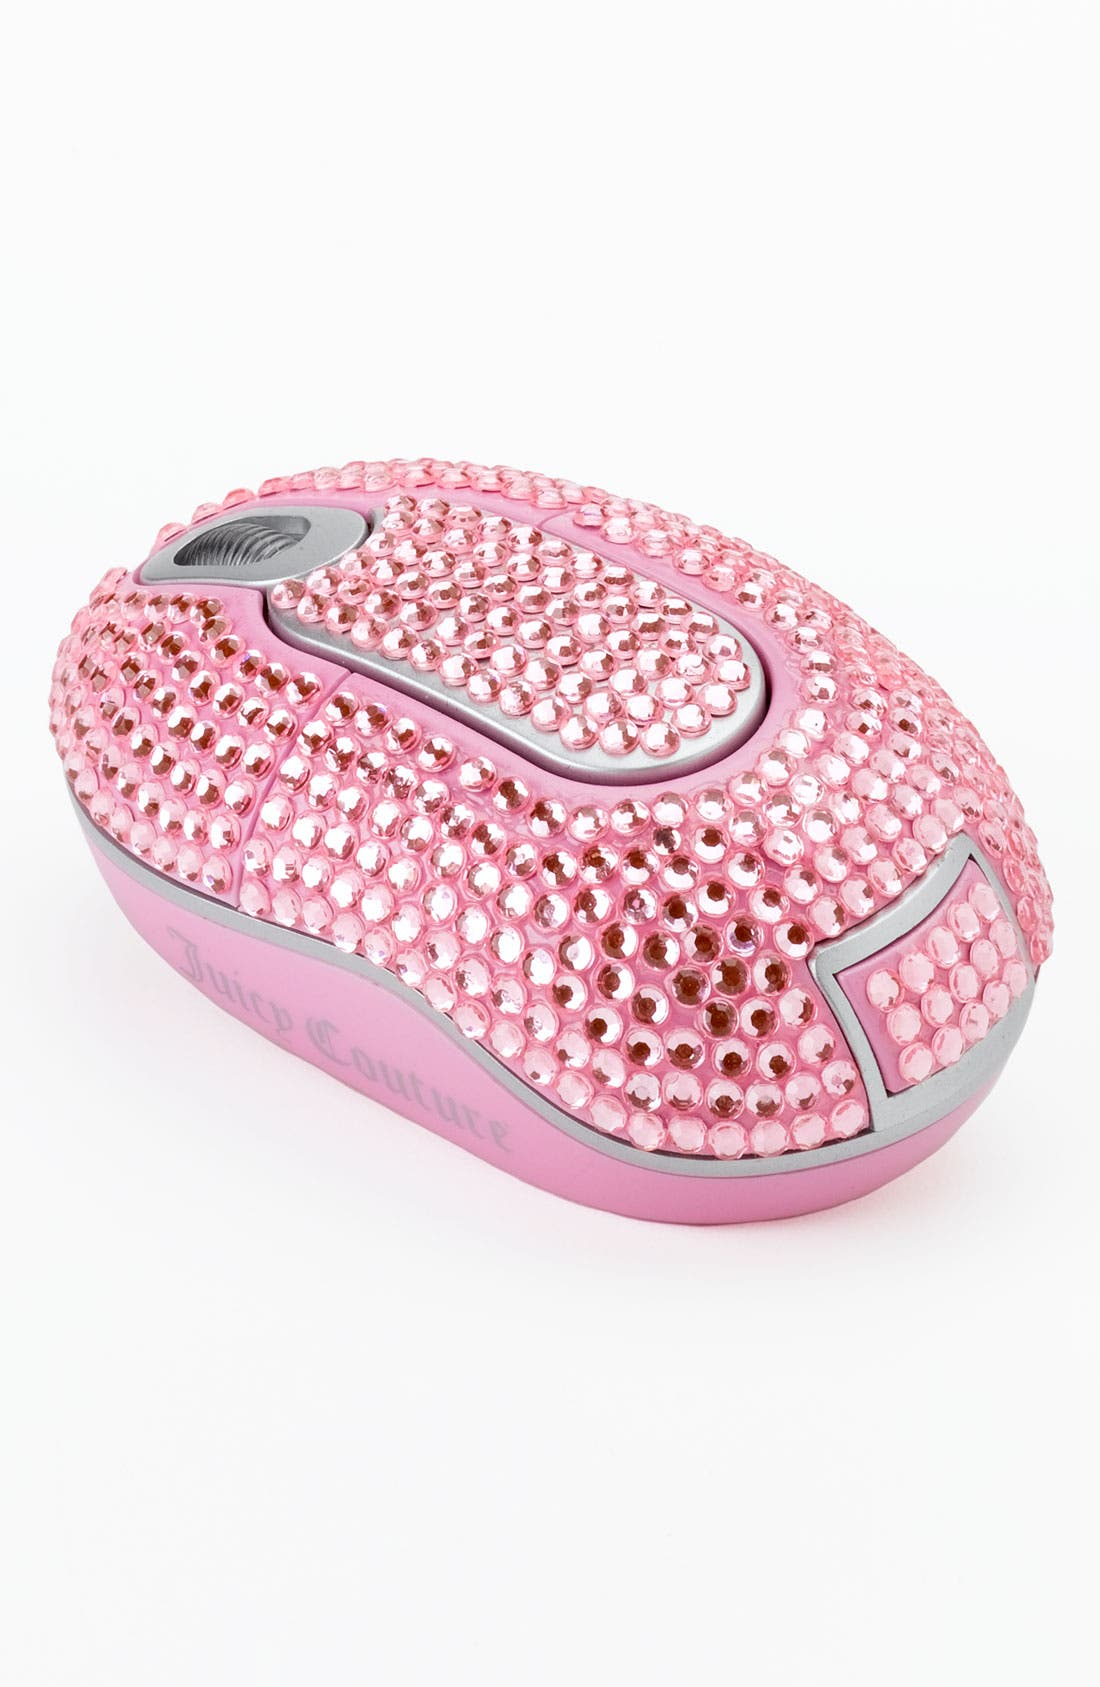 Main Image - Juicy Couture 'Blinged Out' Wireless Mouse